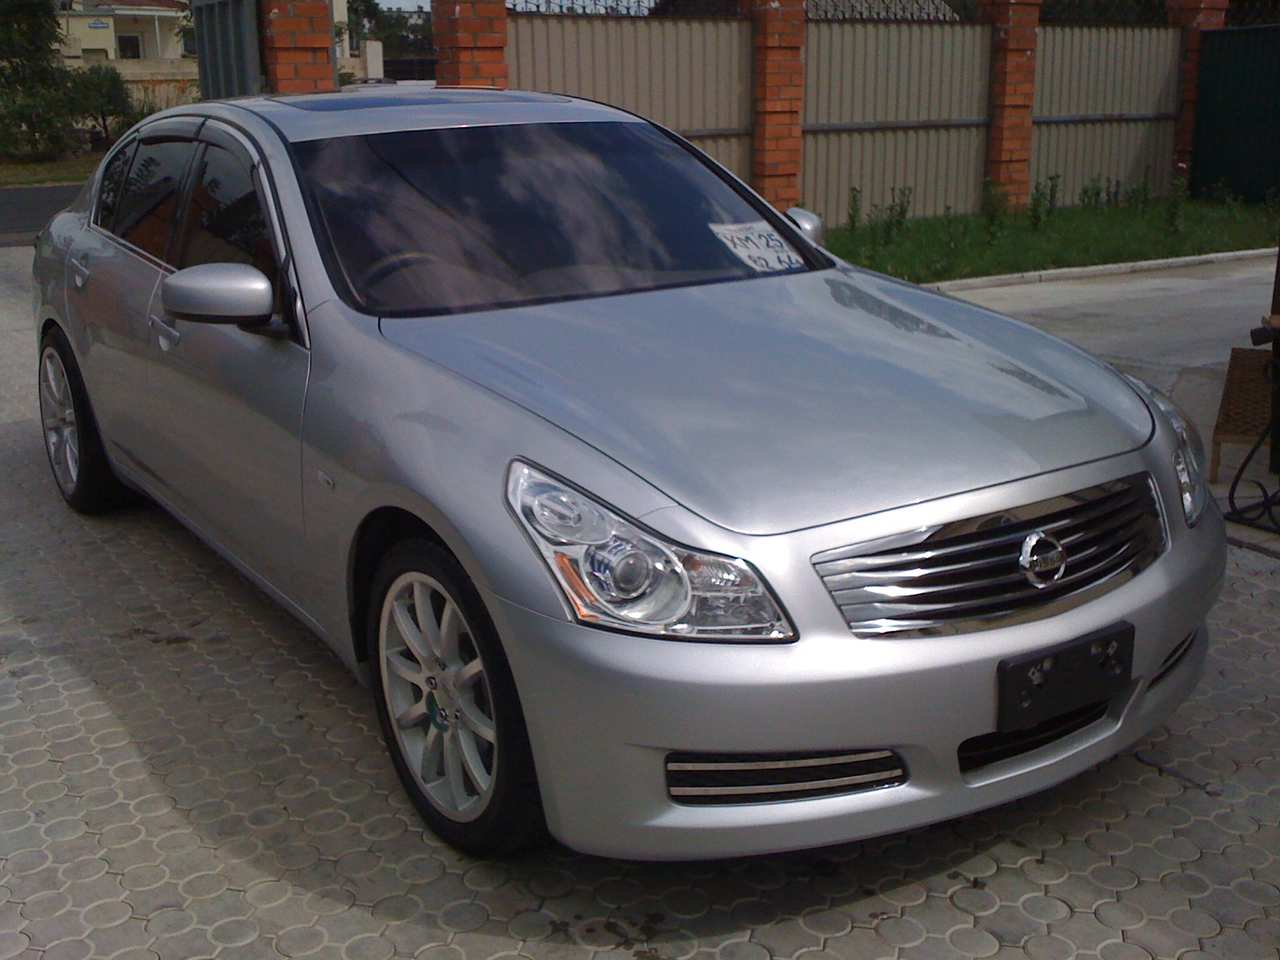 used 2007 nissan skyline photos 2500cc gasoline fr or rr cvt for sale. Black Bedroom Furniture Sets. Home Design Ideas